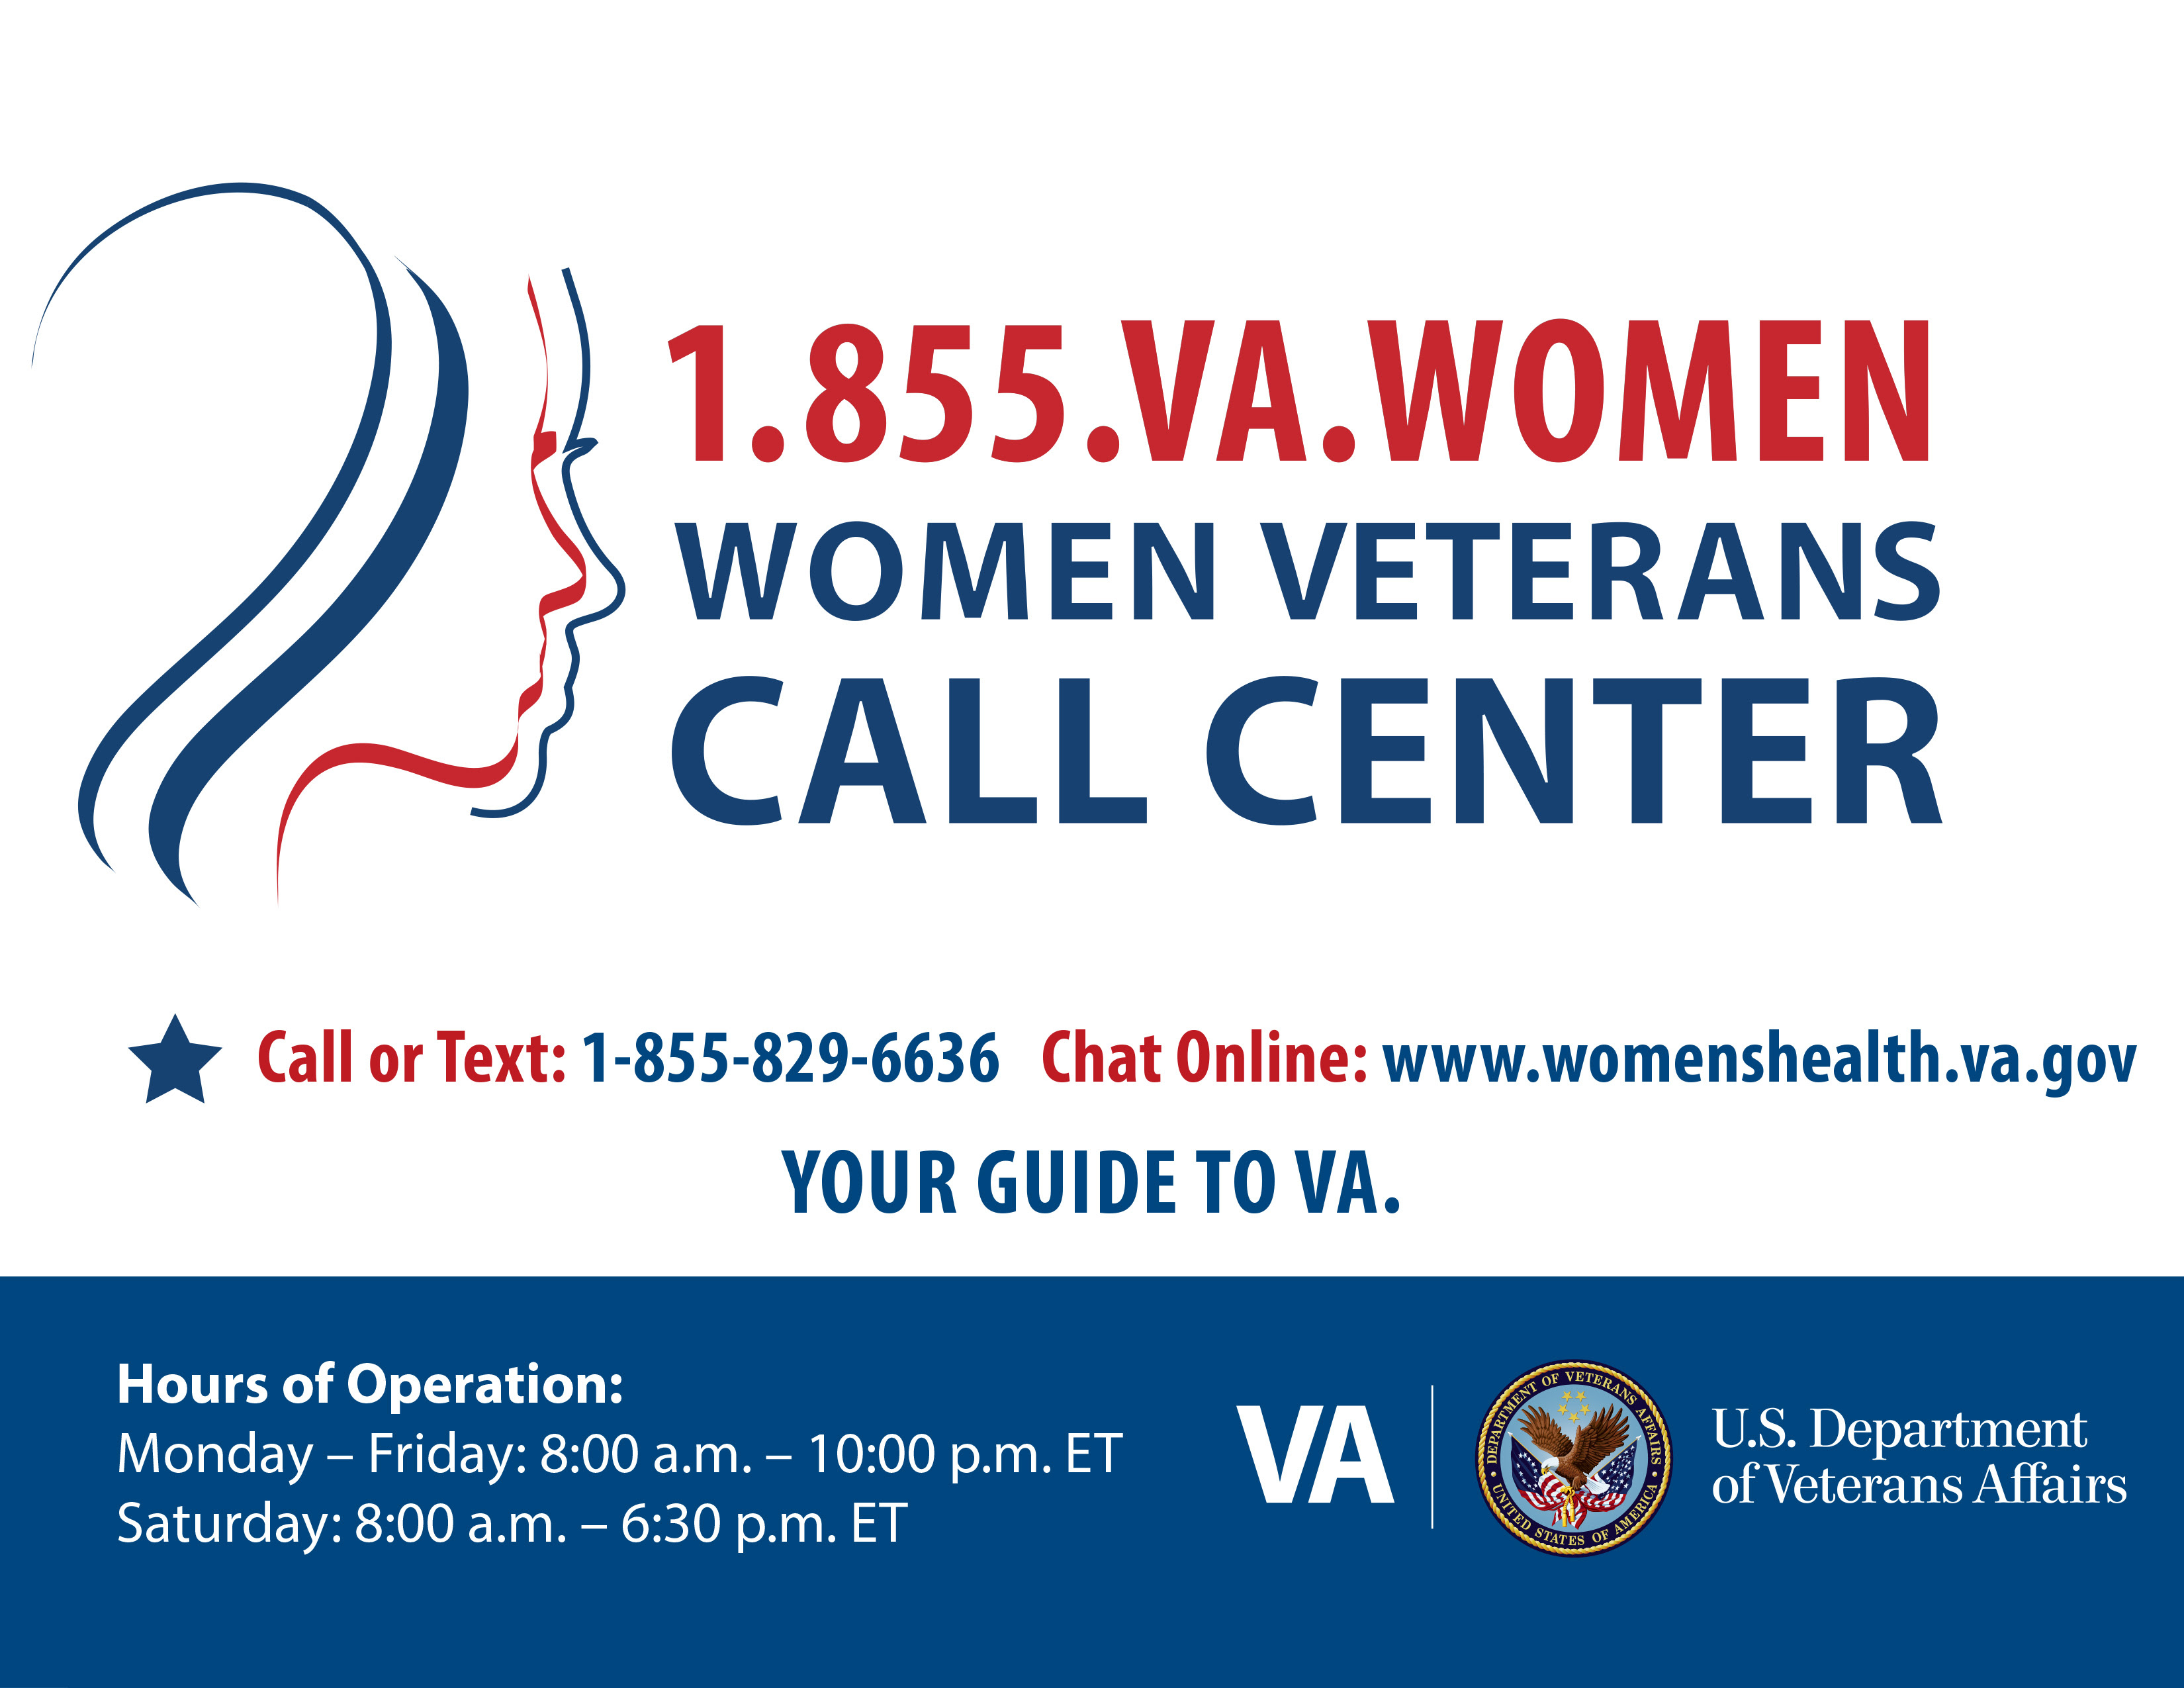 Trust her to find answers - Women Veterans Health Care